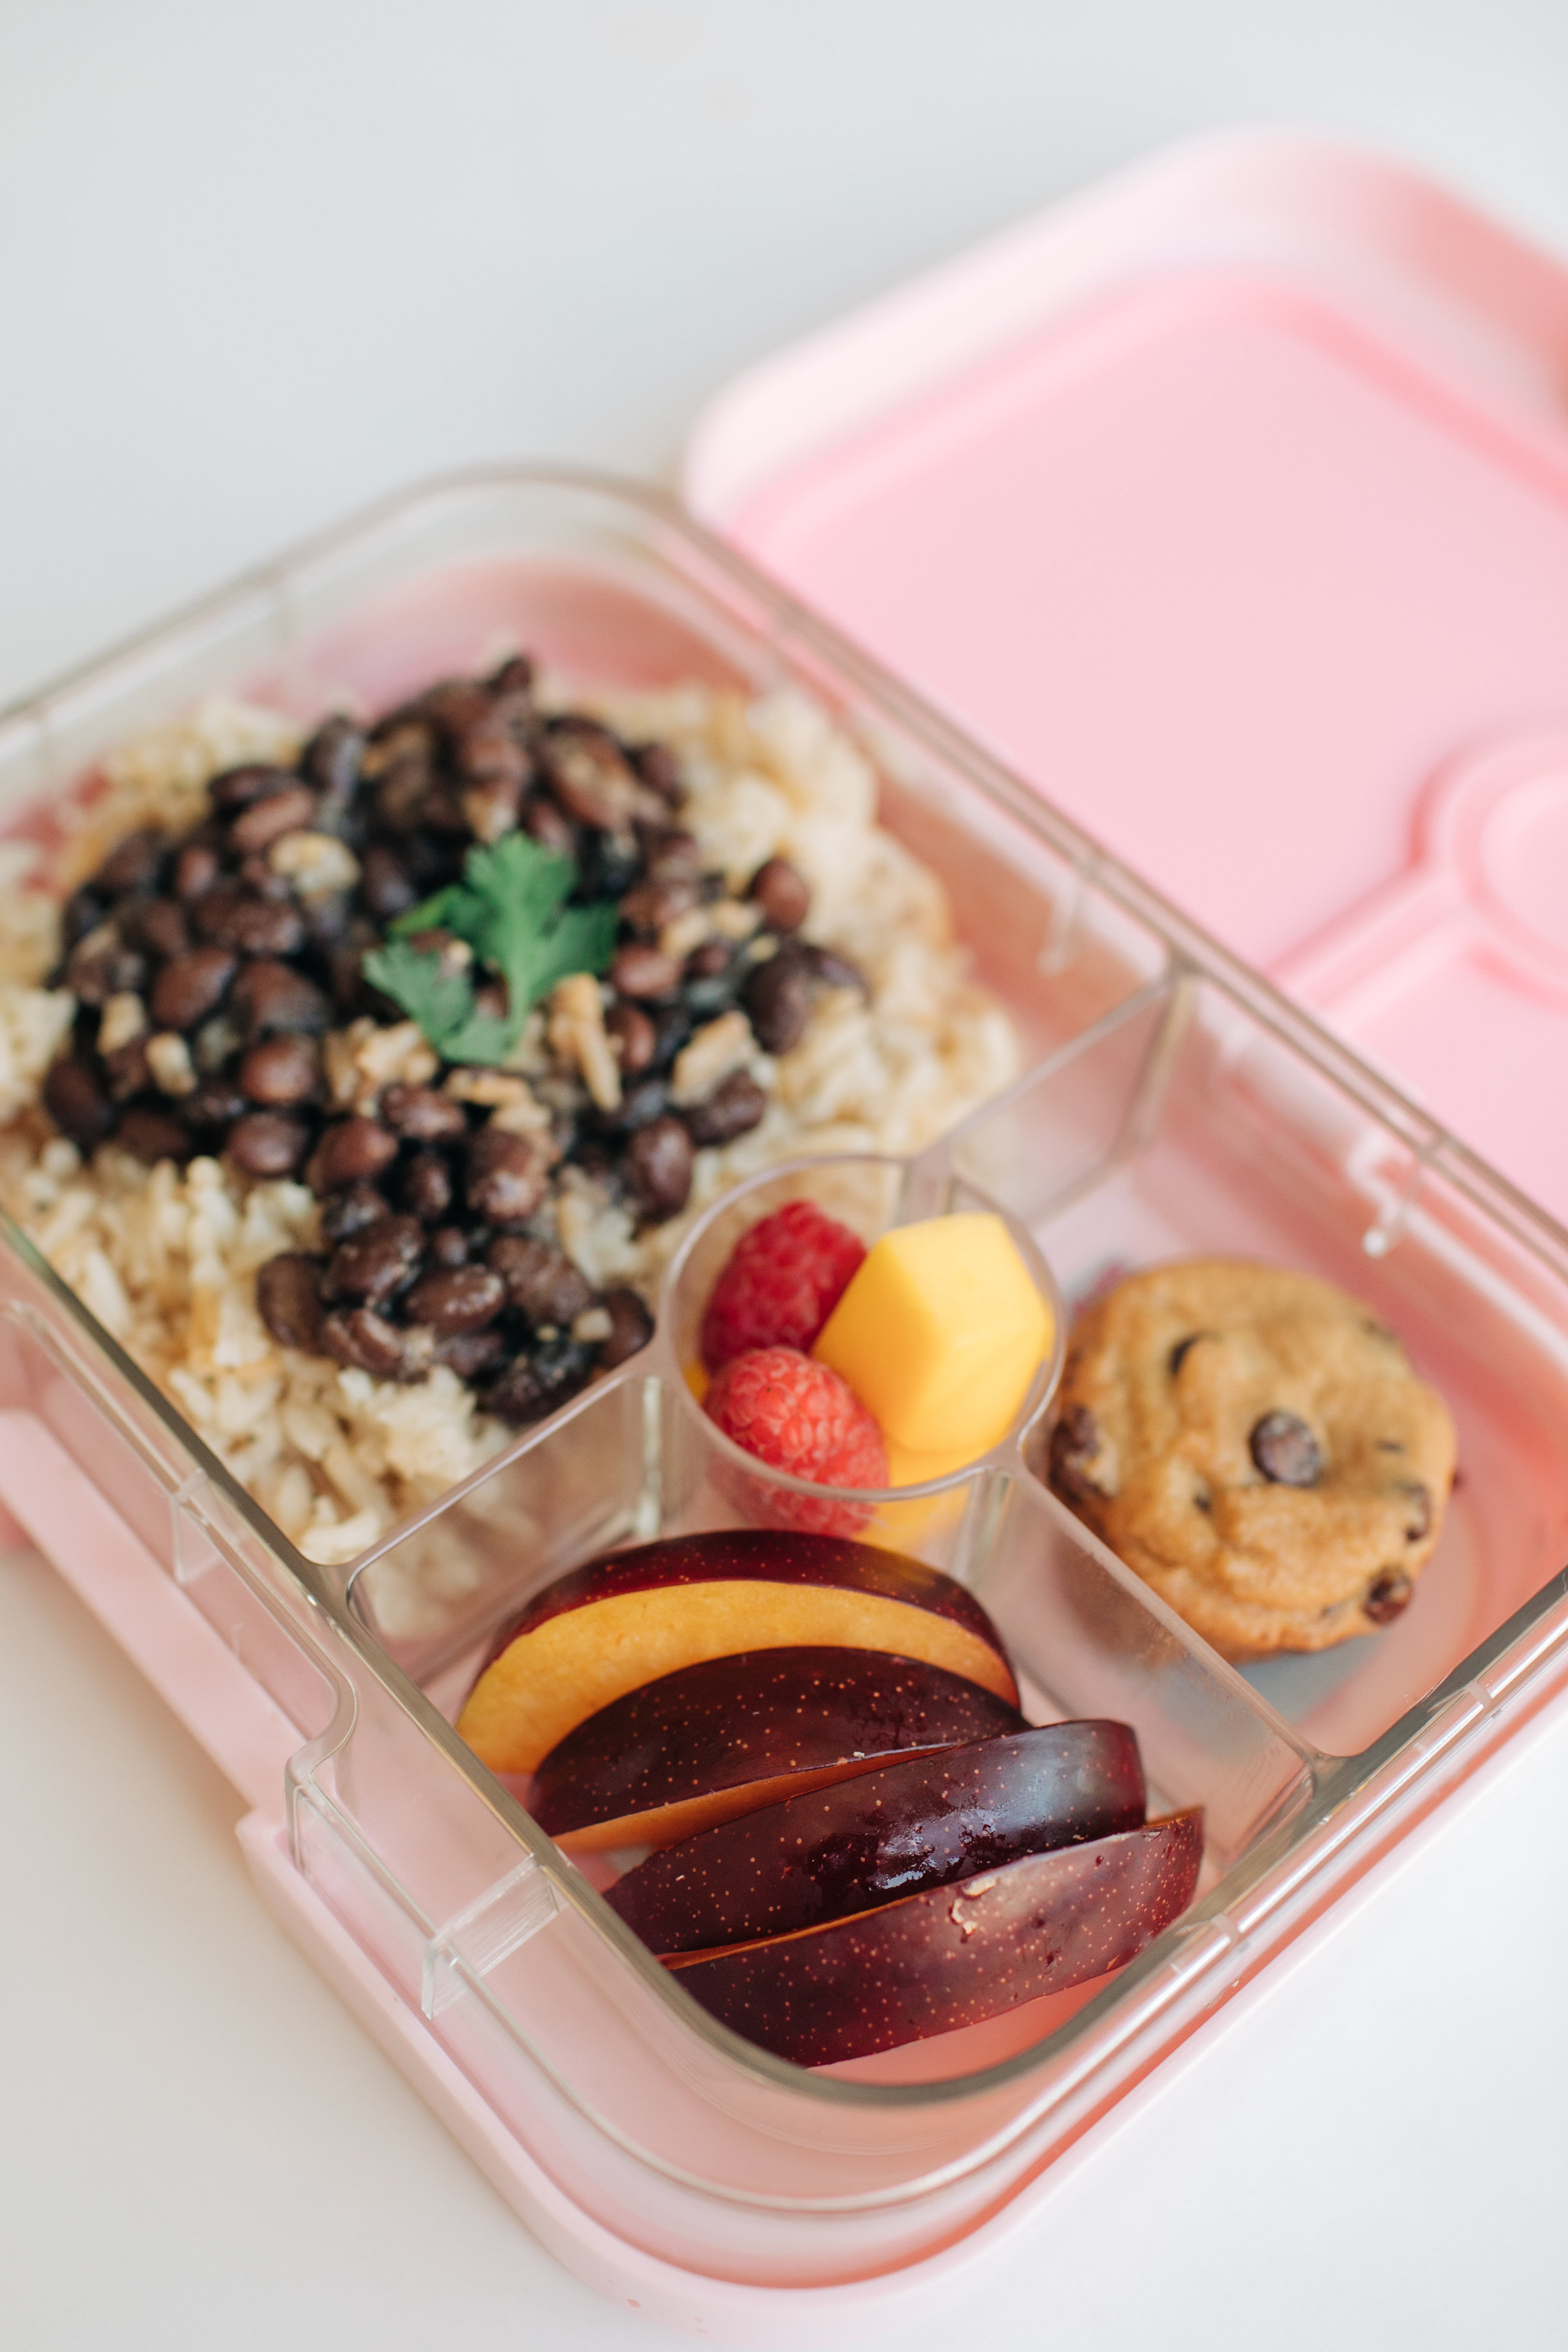 """This lunch is a favorite! Mila will eat rice for every meal if I'd let her. If you ask her what she wants for dinner she'll more than likely say """"Rice and beans!"""" or """"PIZZA!"""" She loves when I pack rice and beans for her lunch (her preschool warms it for her).  In this lunch here I've loaded up on fruit with raspberries, mango pieces, and plum slices. Two mini chocolate chip cookies and a portion of brown rice with black beans.  This Yumbox here is the  Panino  style!"""